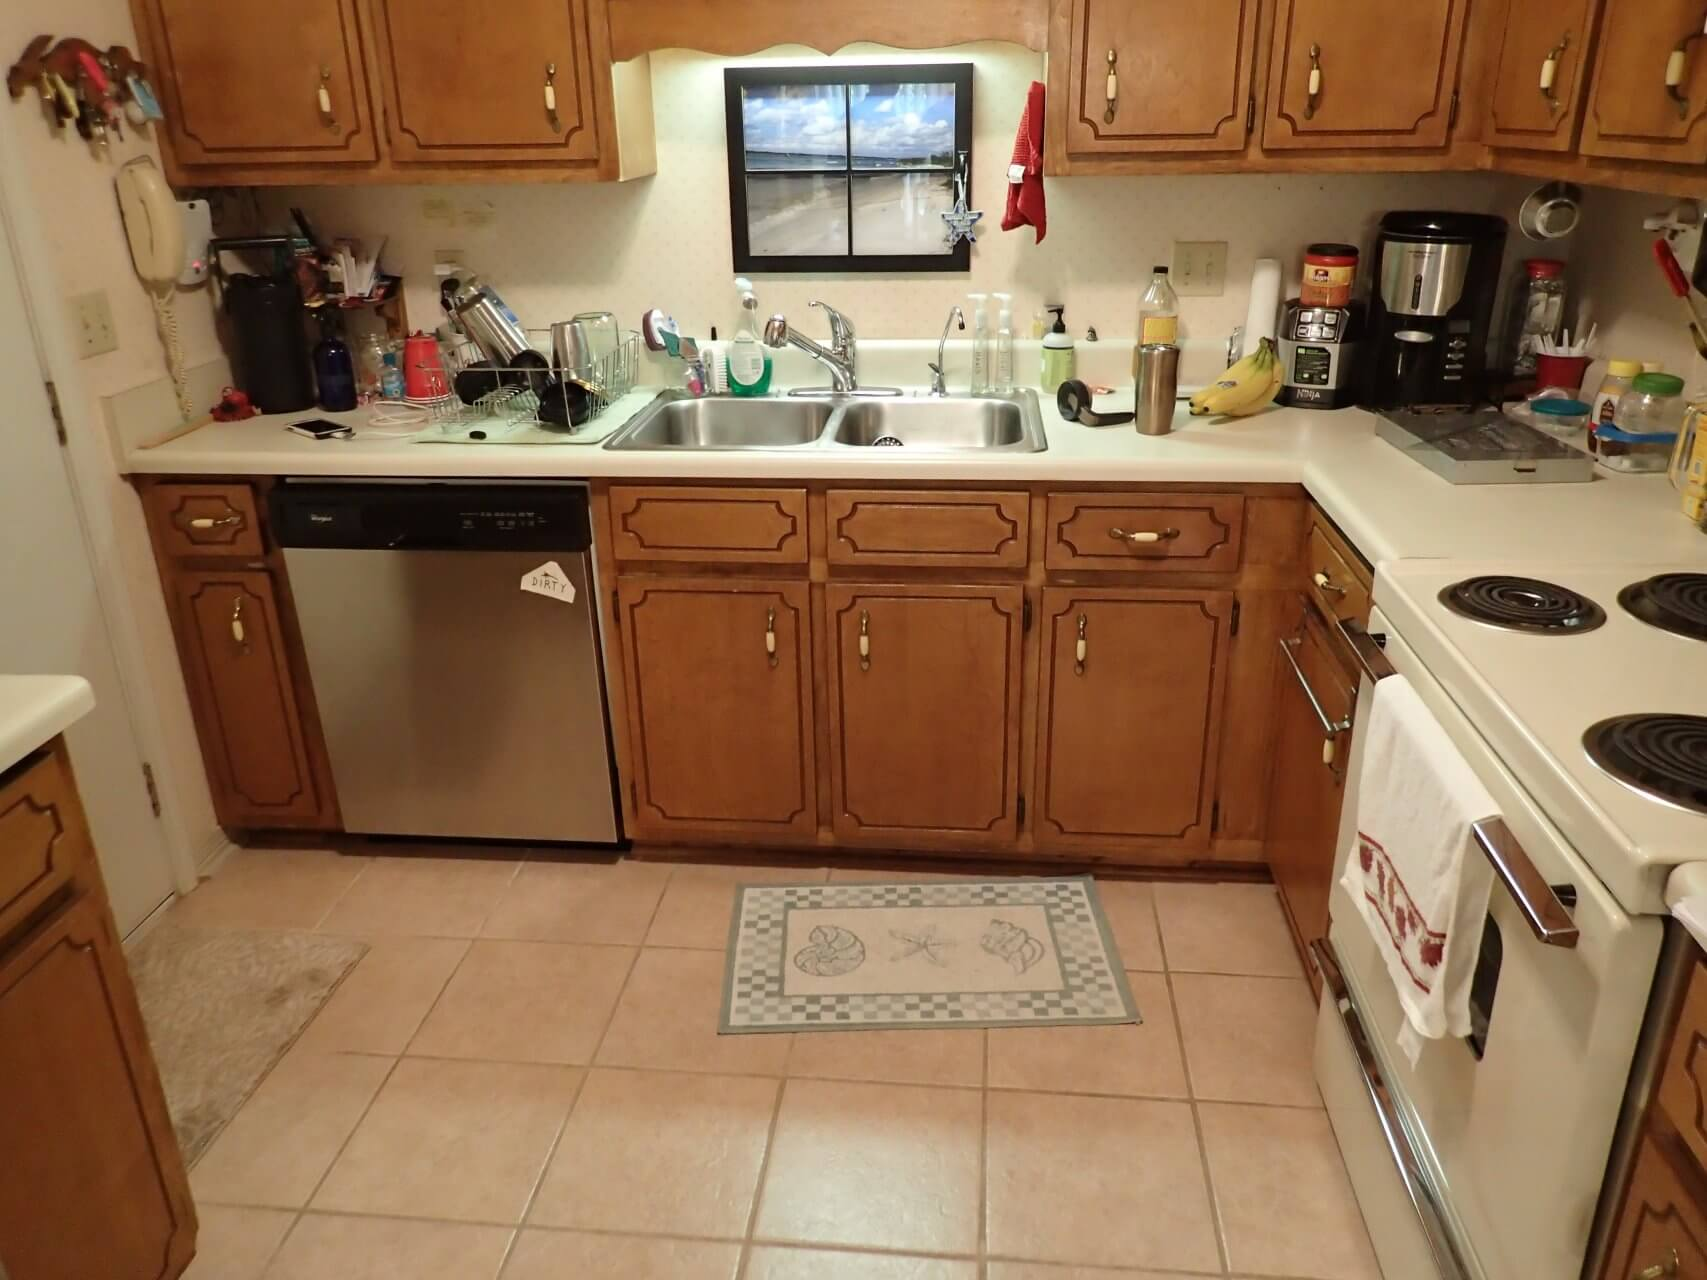 Old kitchen with cluttered countertop